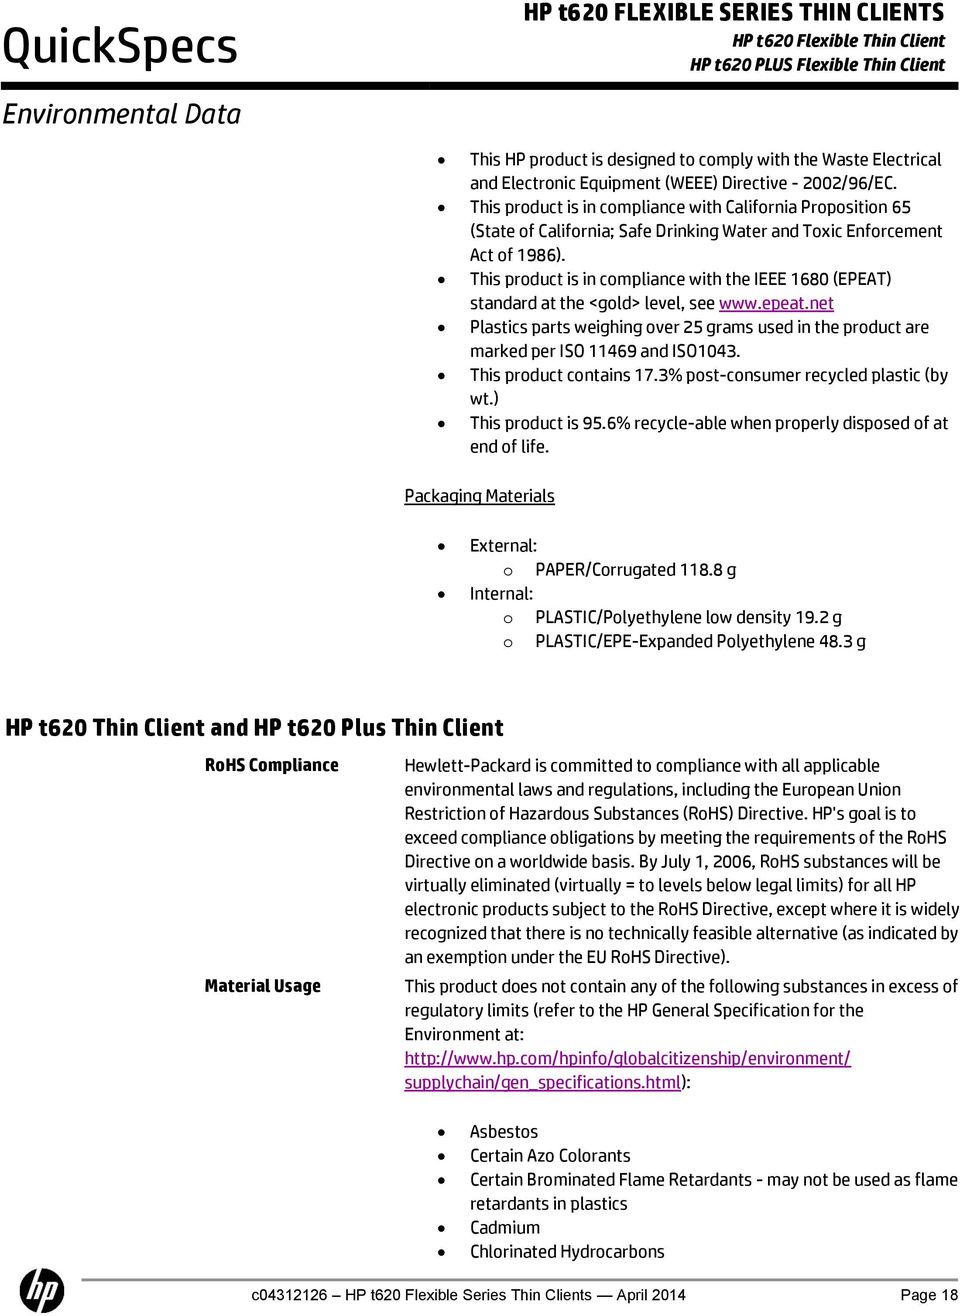 Hp Thin Client End Of Life Dates